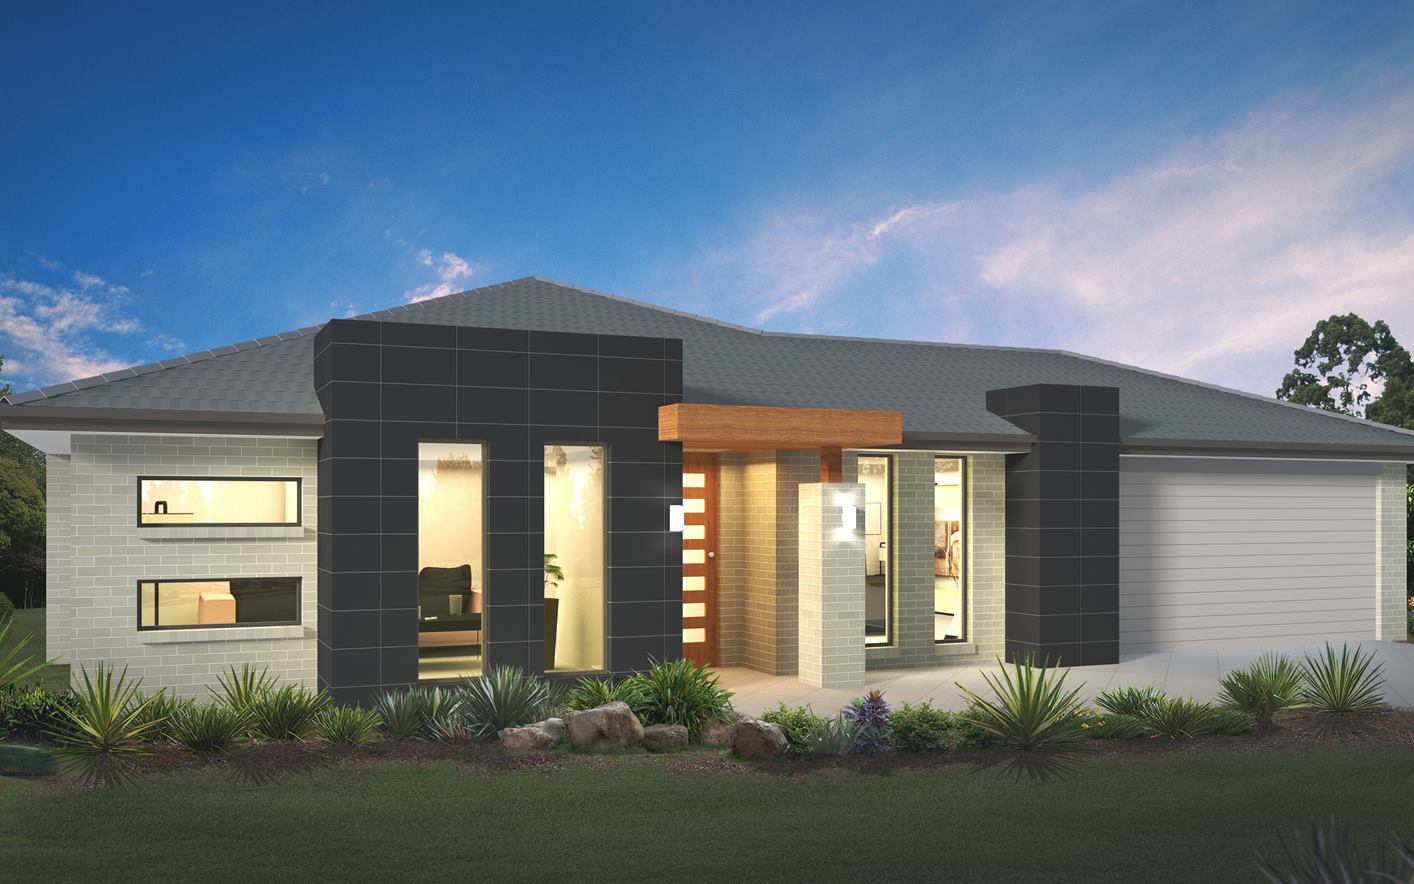 Metford 33 Home Design with Vogue Facade